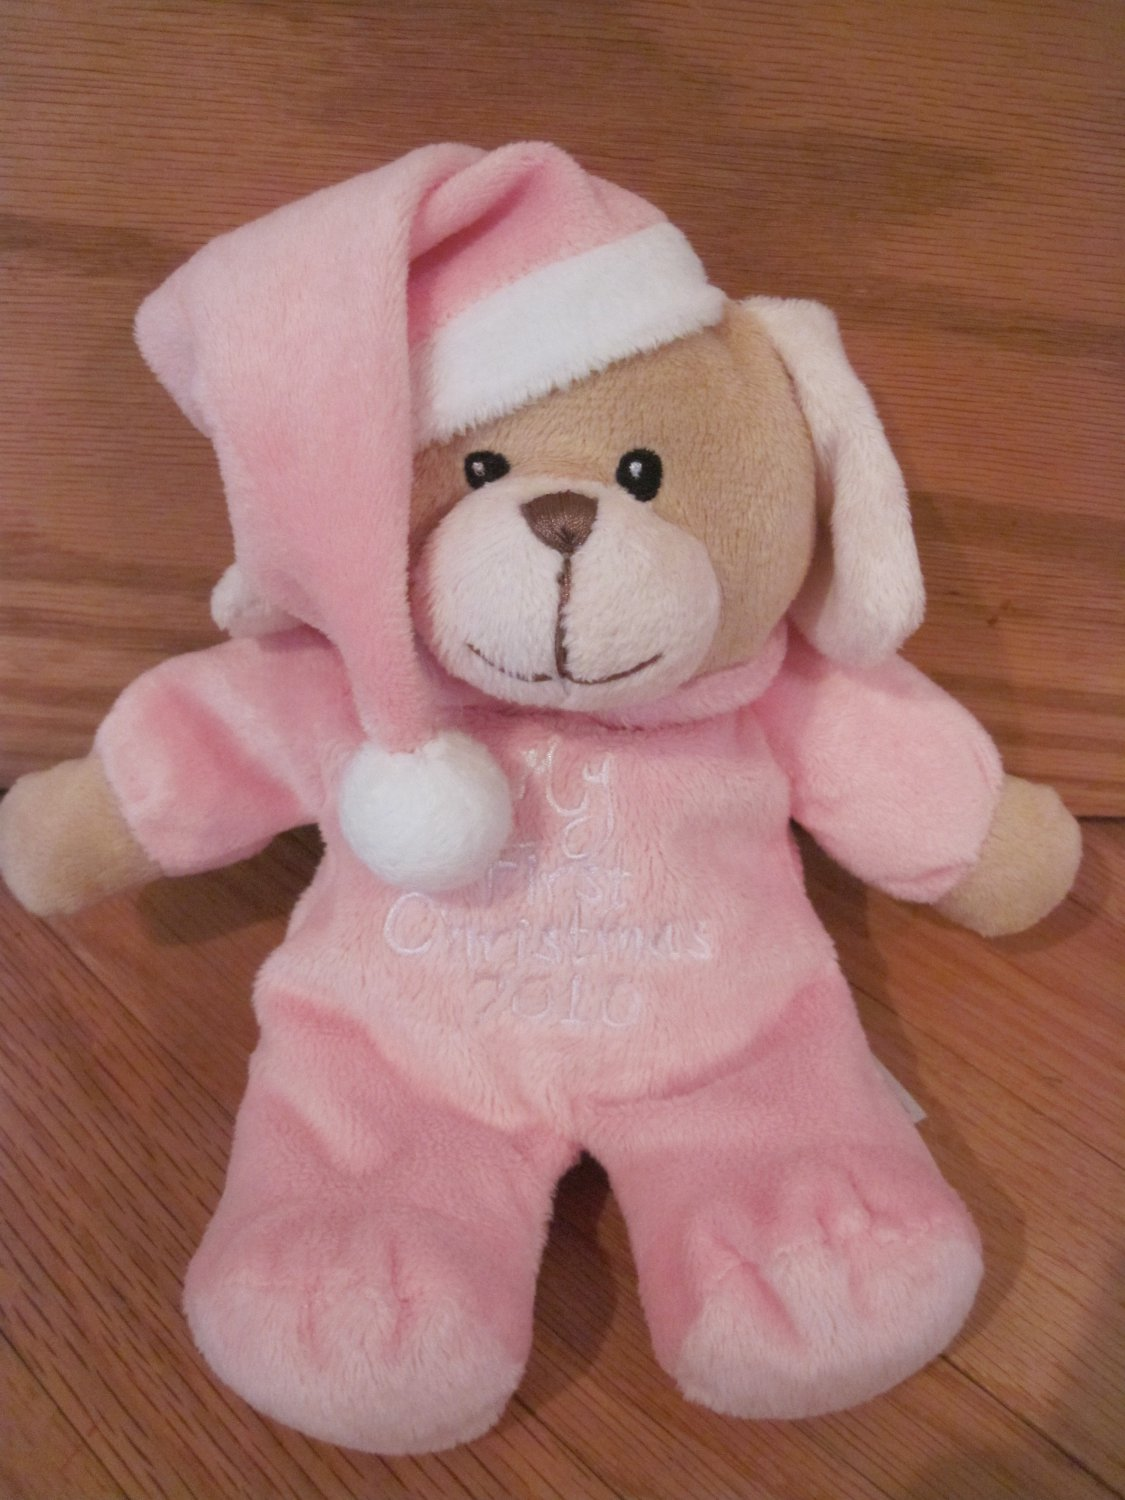 Dandee Collectors Choice My First Christmas 2010 Pink Plush Puppy Dog with Hat